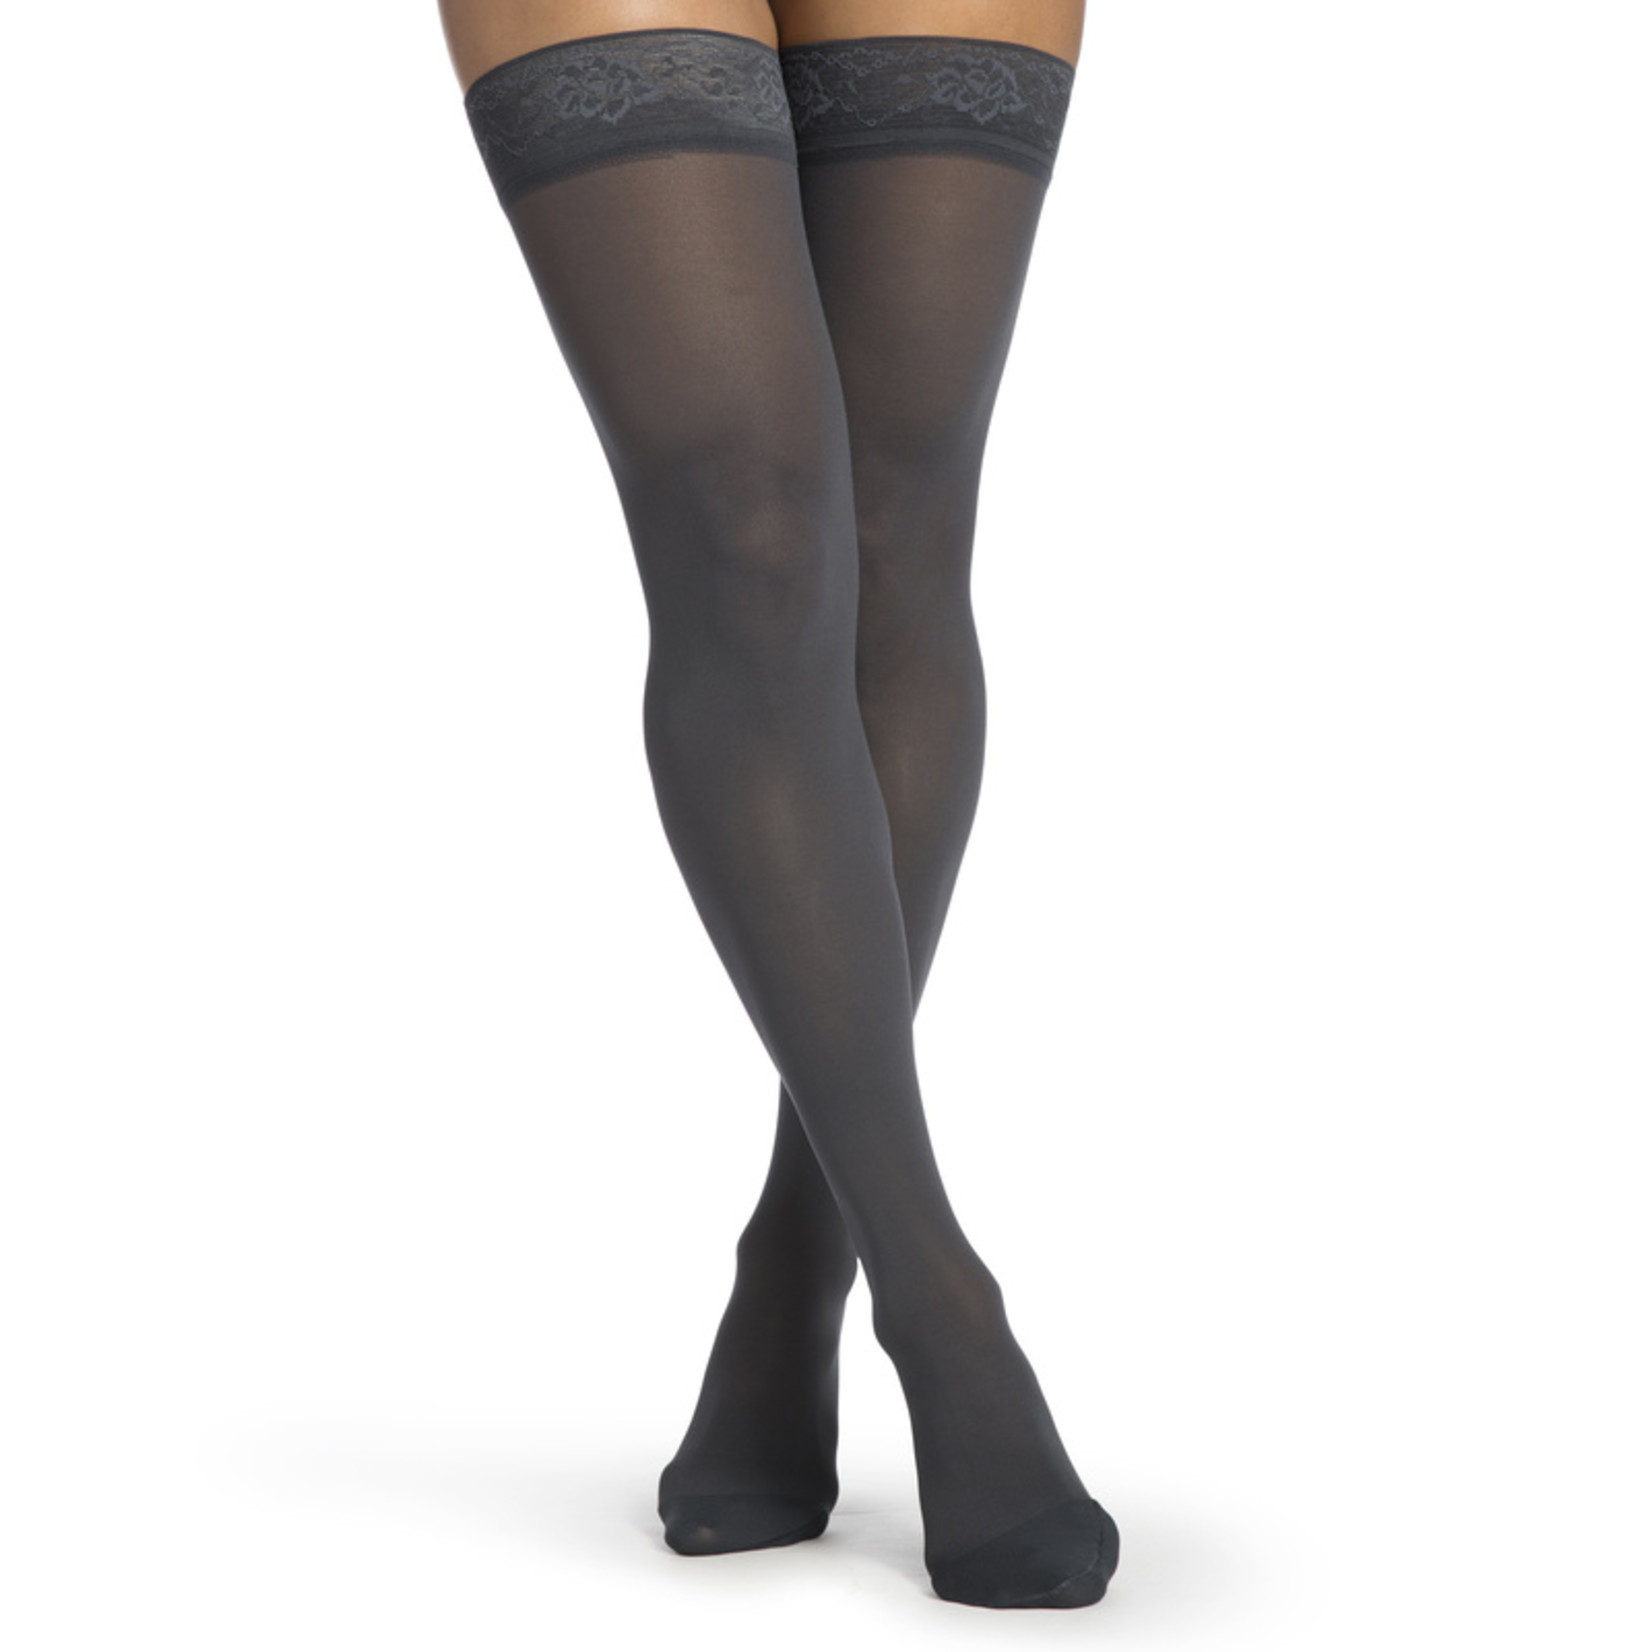 SIGVARIS Women's Style Medium Sheer Thigh-High 20-30mmHg